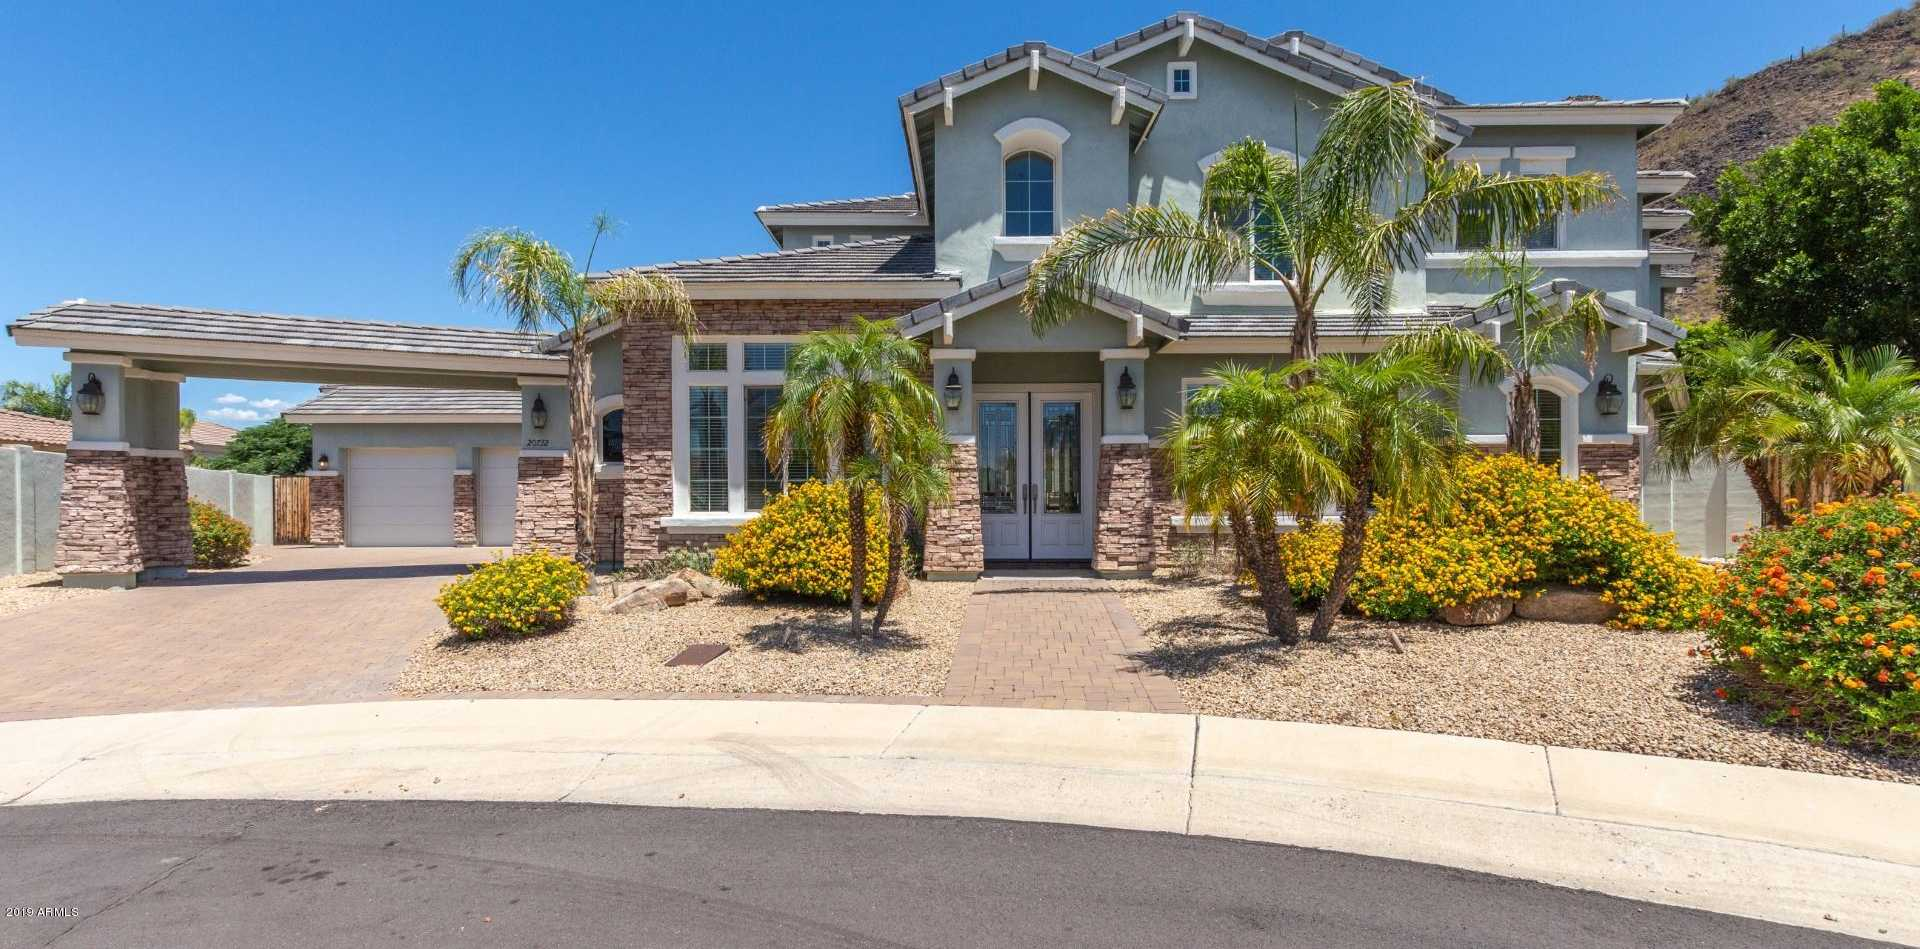 $669,500 - 5Br/4Ba - Home for Sale in Trail's End, Glendale